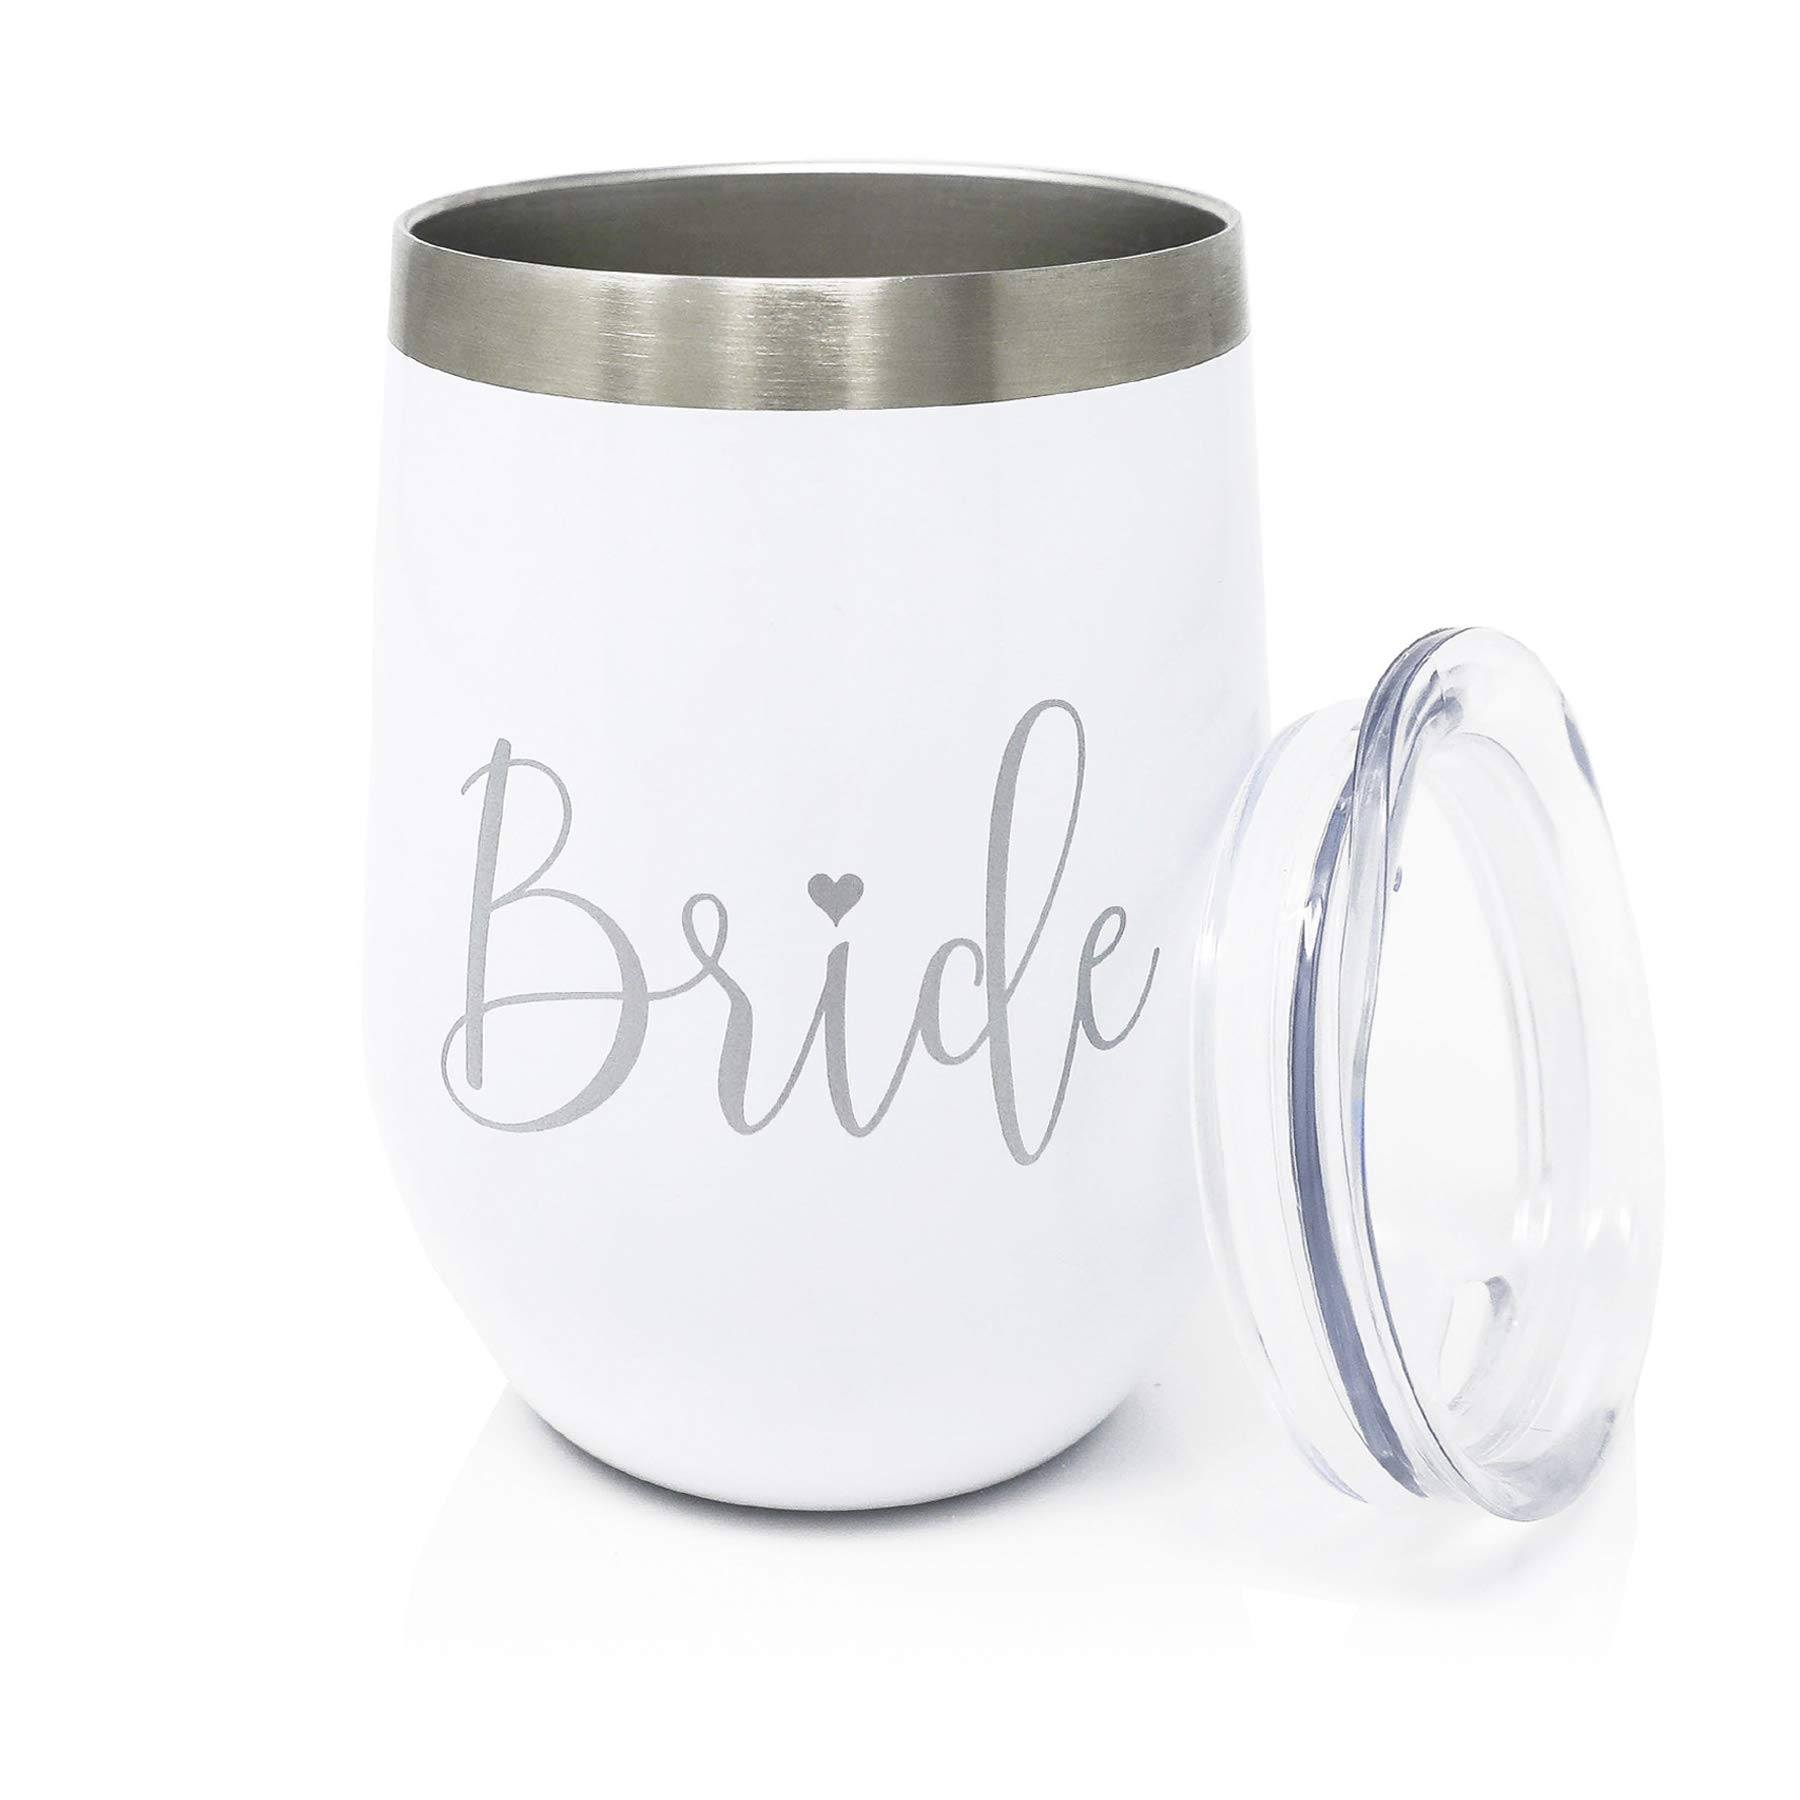 Bride Wine Tumbler with Lid - 12 oz Double Wall Vacuumed Wine, White and Silver Stainless Steel Cup, Perfect Engagement Party, Bridal Shower, Bachelorette Party or Wedding Gift - BPA FREE by Bliss Collections (Image #2)